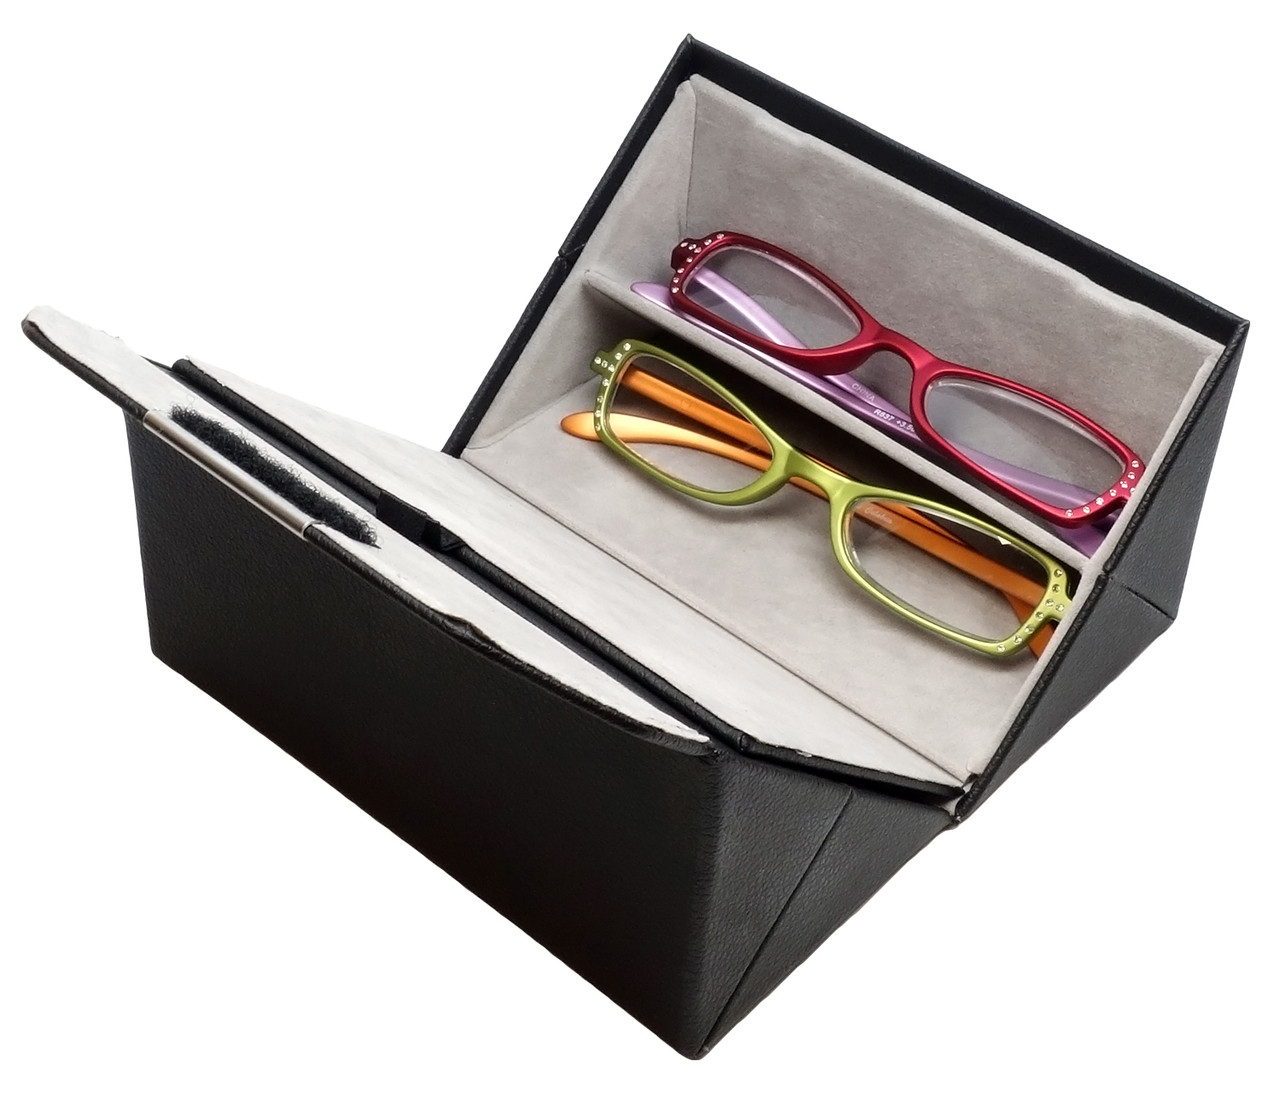 Calabria 837 Reading Glasses & Quad Case Gift Set